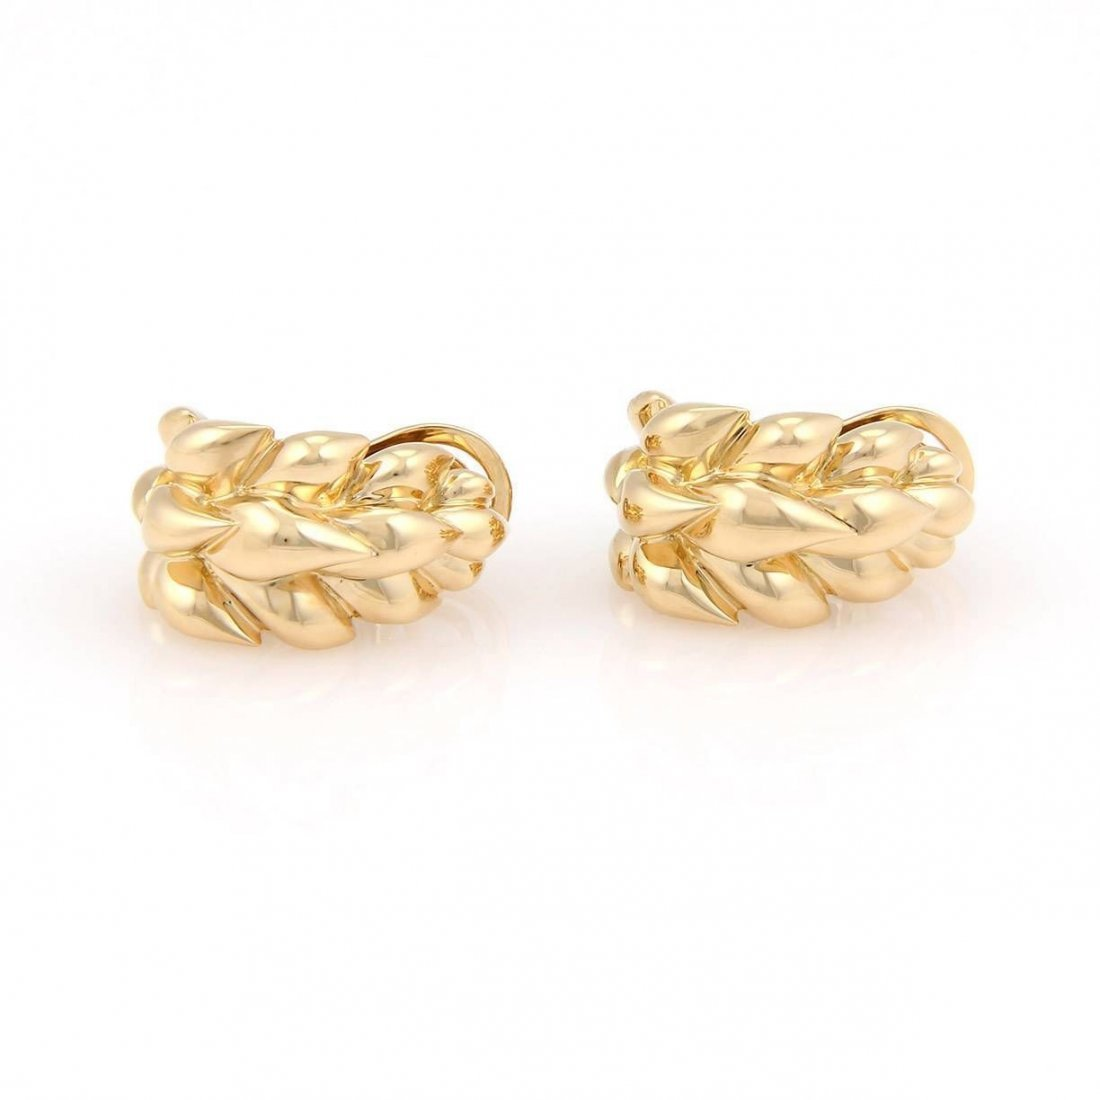 Chanel 18K Yellow Gold Floral Design Huggie Earrings